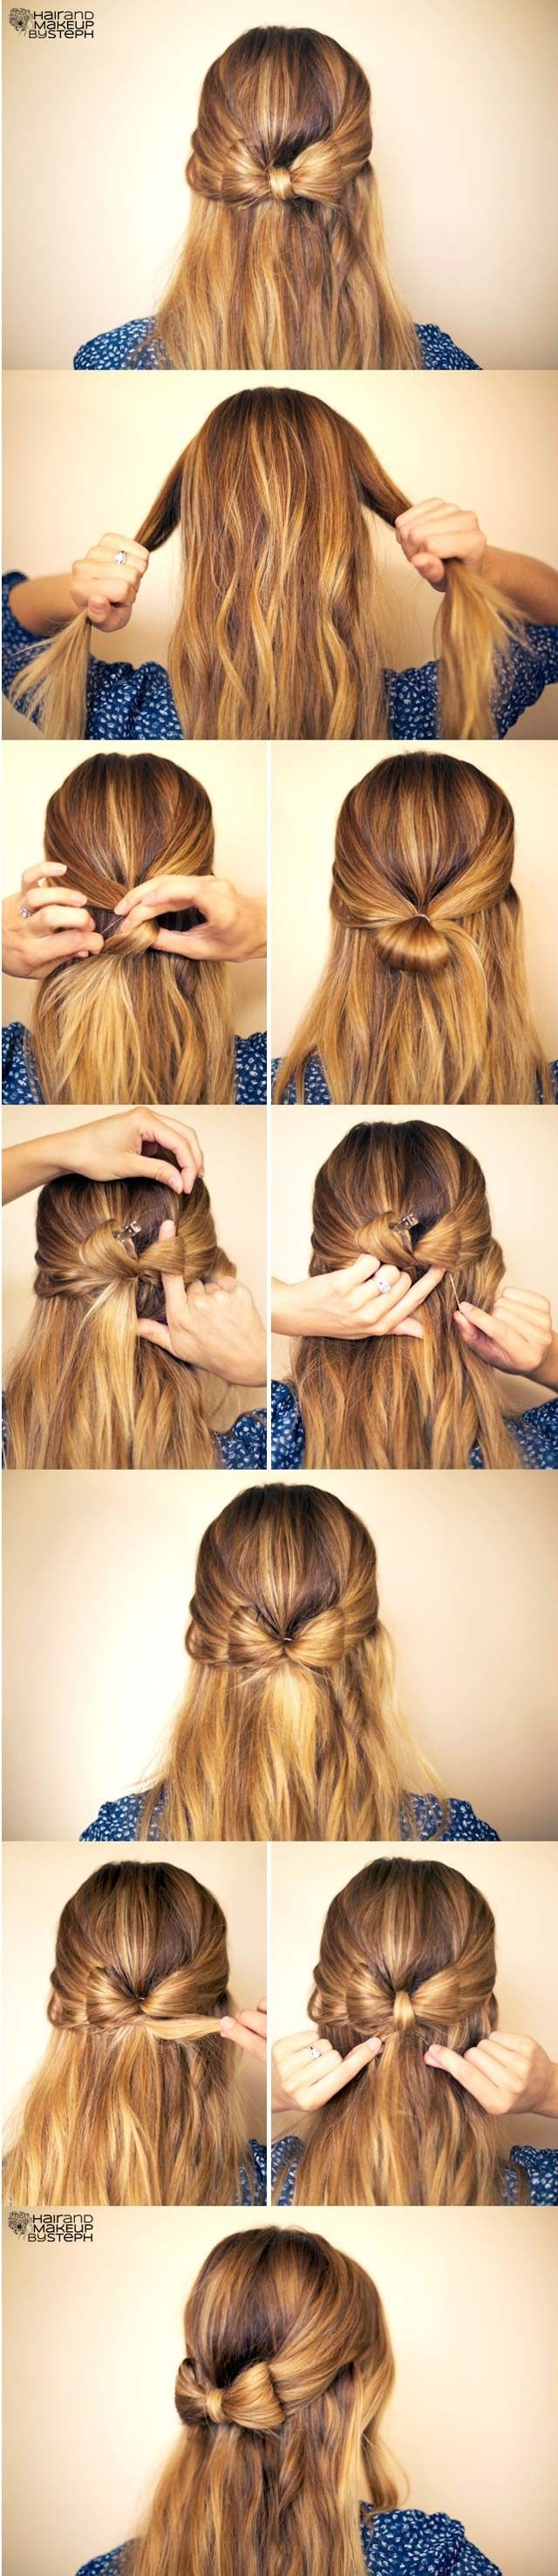 cute easy hairstyle hair bow tutorial